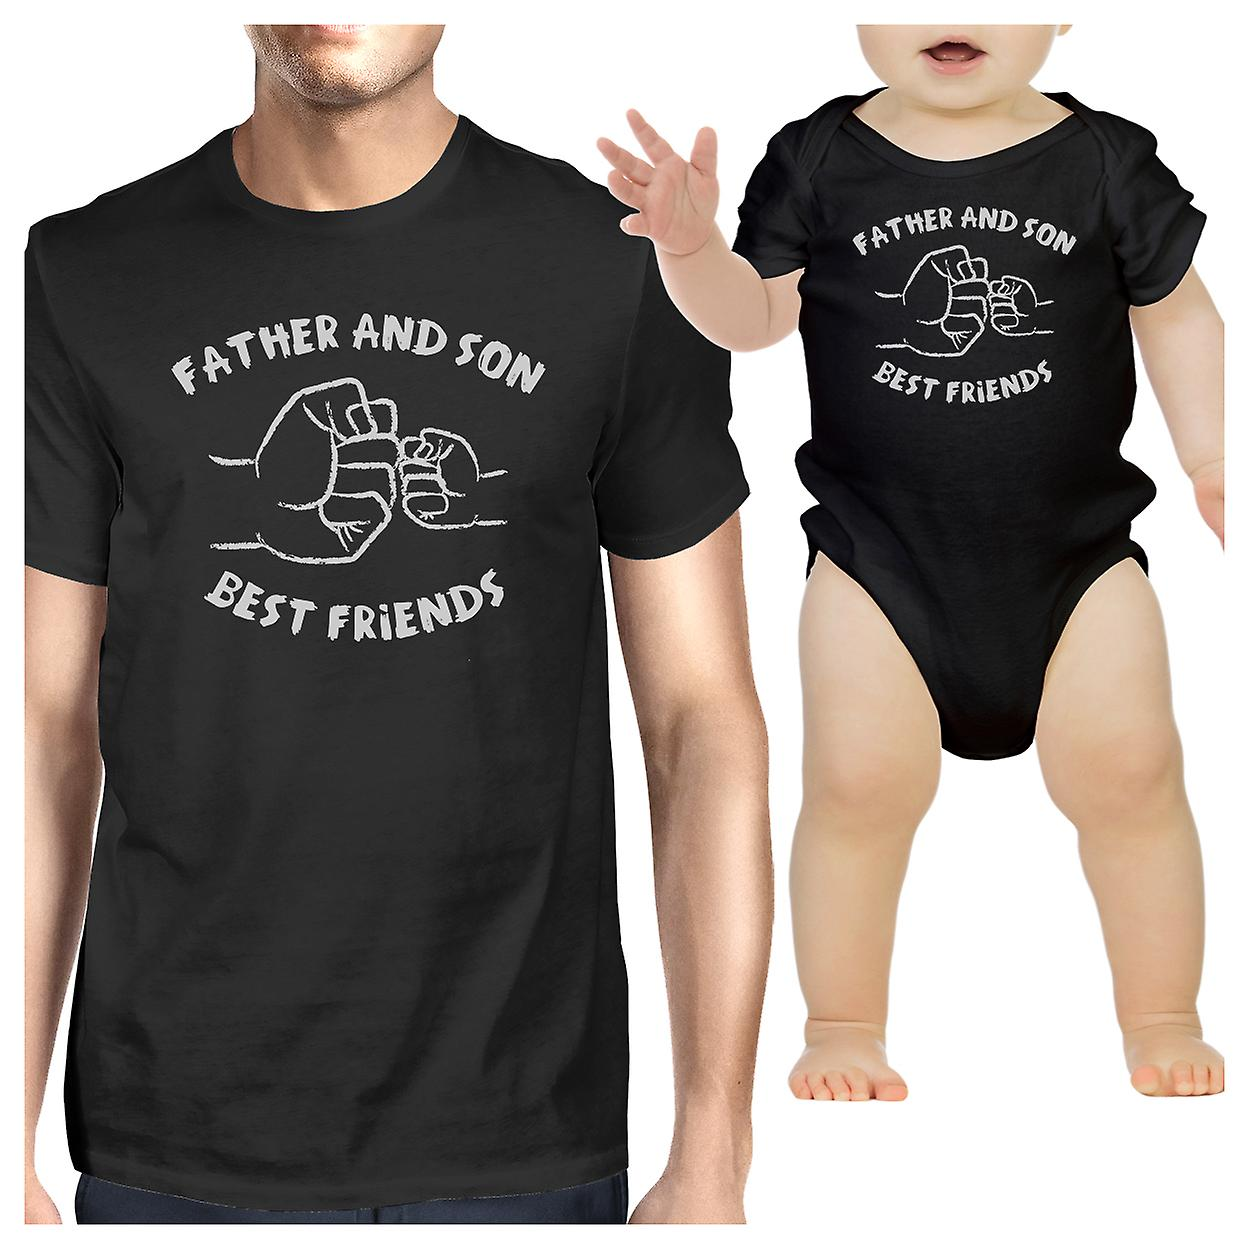 956ae077856 Father And Son Best Friends Black Matching Shirts Father s Day Gift ...